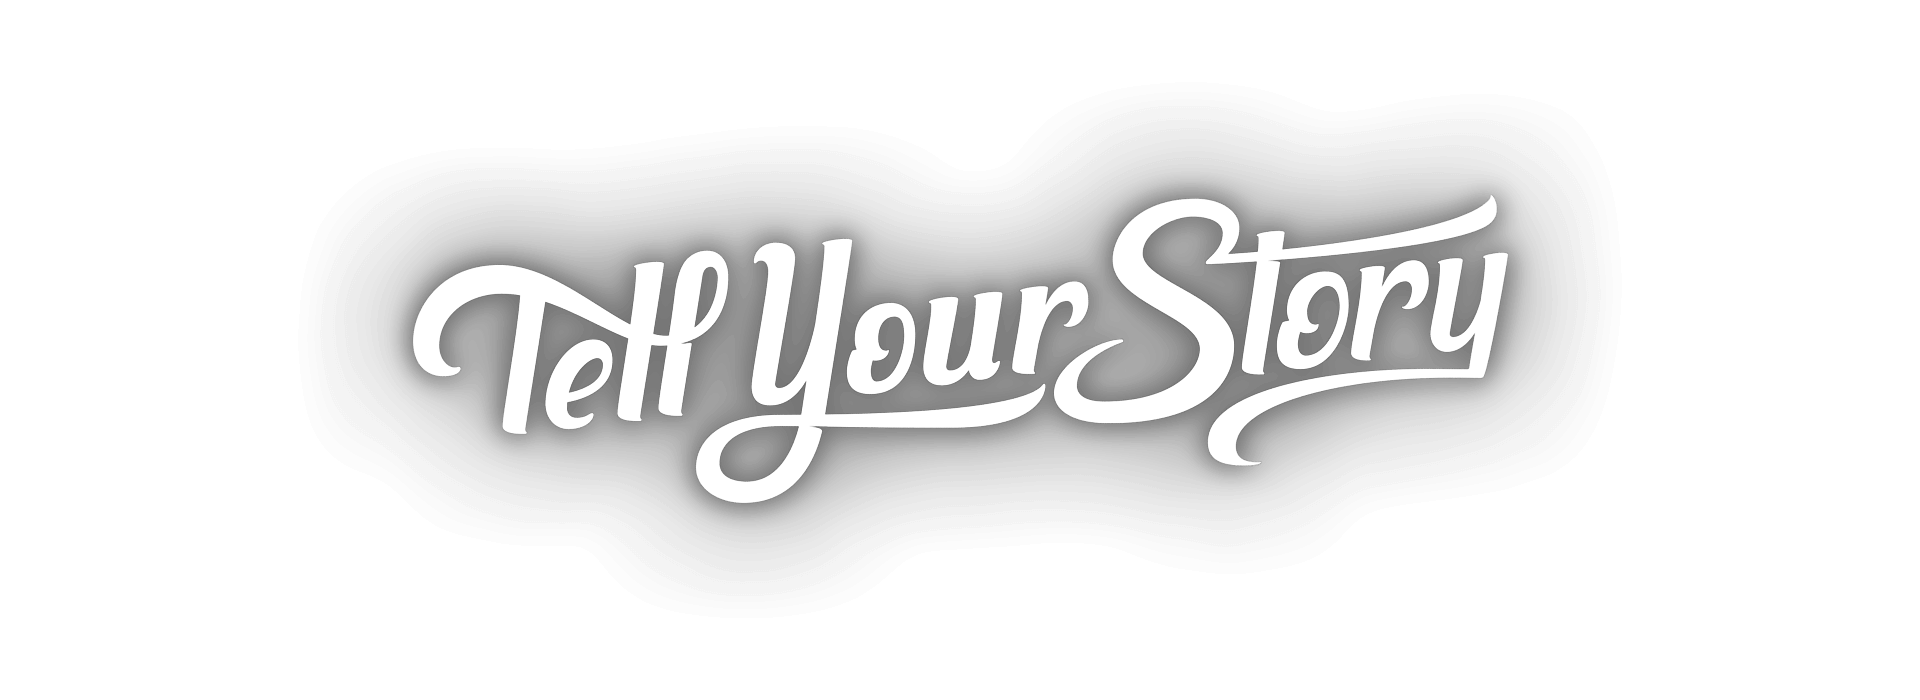 Campsite Collective CampsiteCo Tell Your Story Header